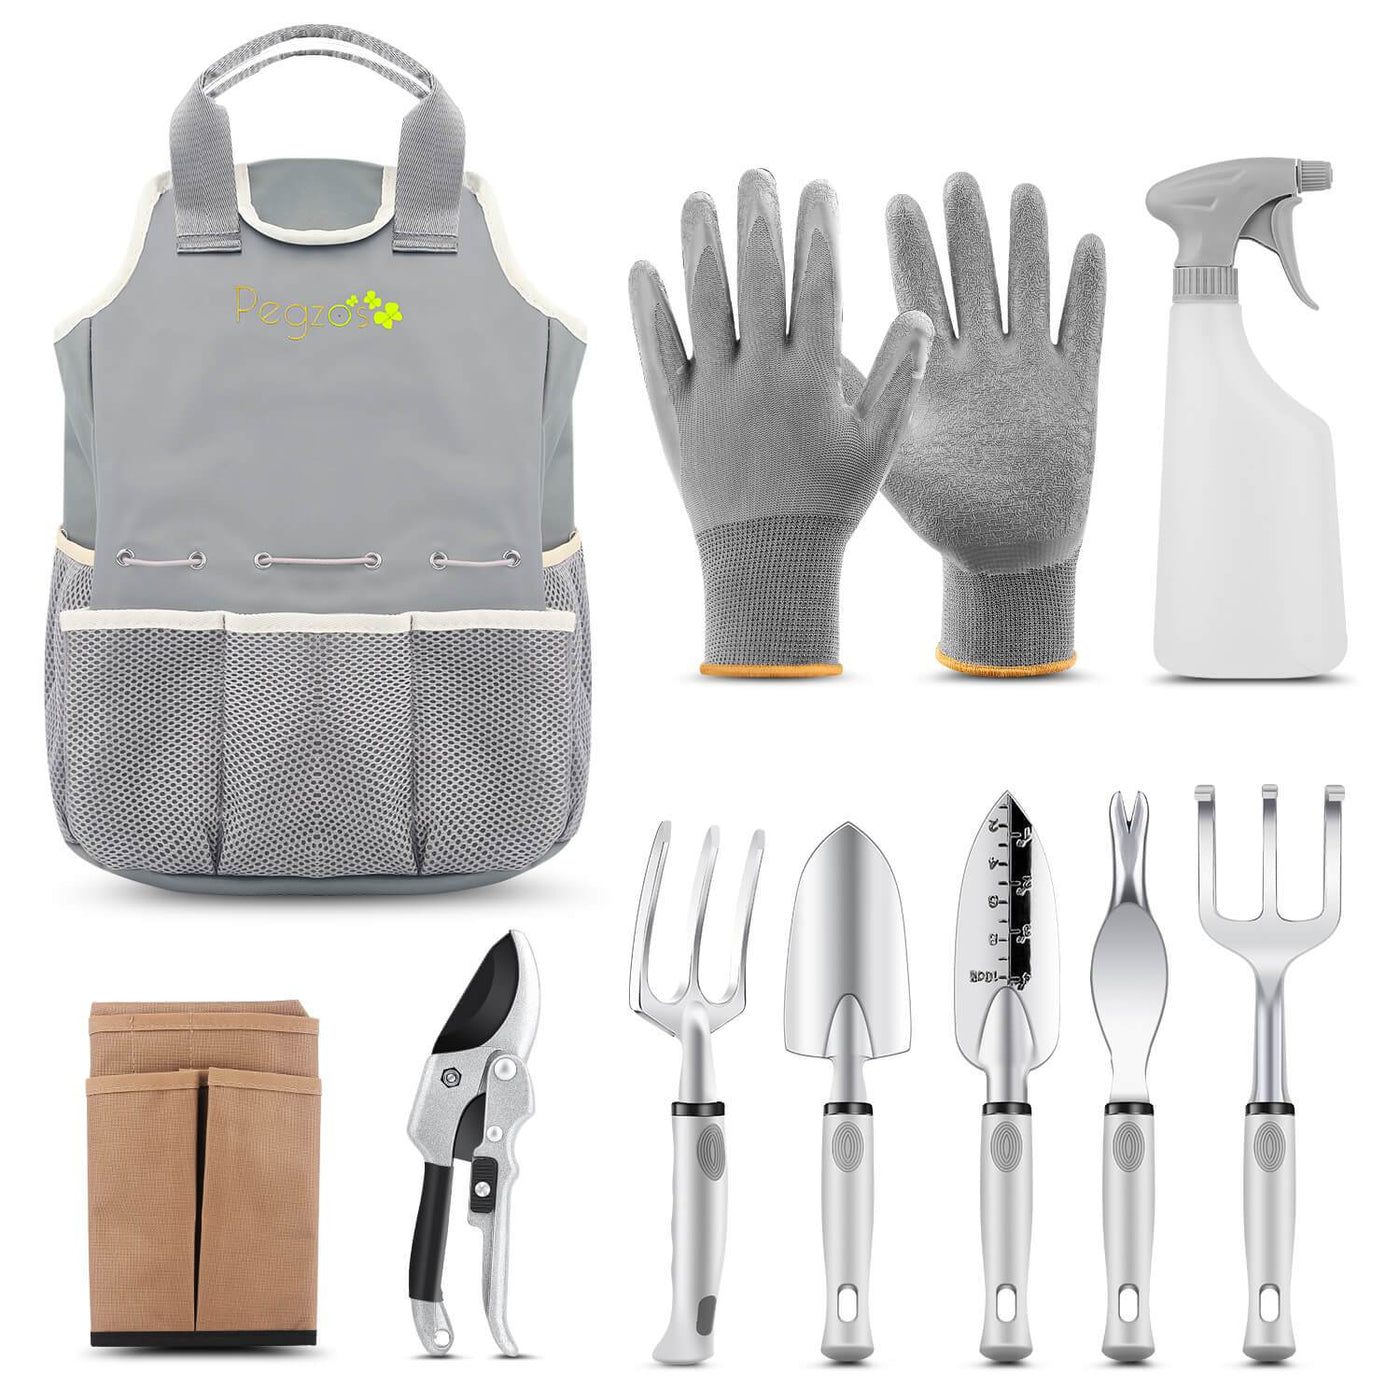 PEGZOS 10 Piece Garden Tools Set   CasaGardens.com ...